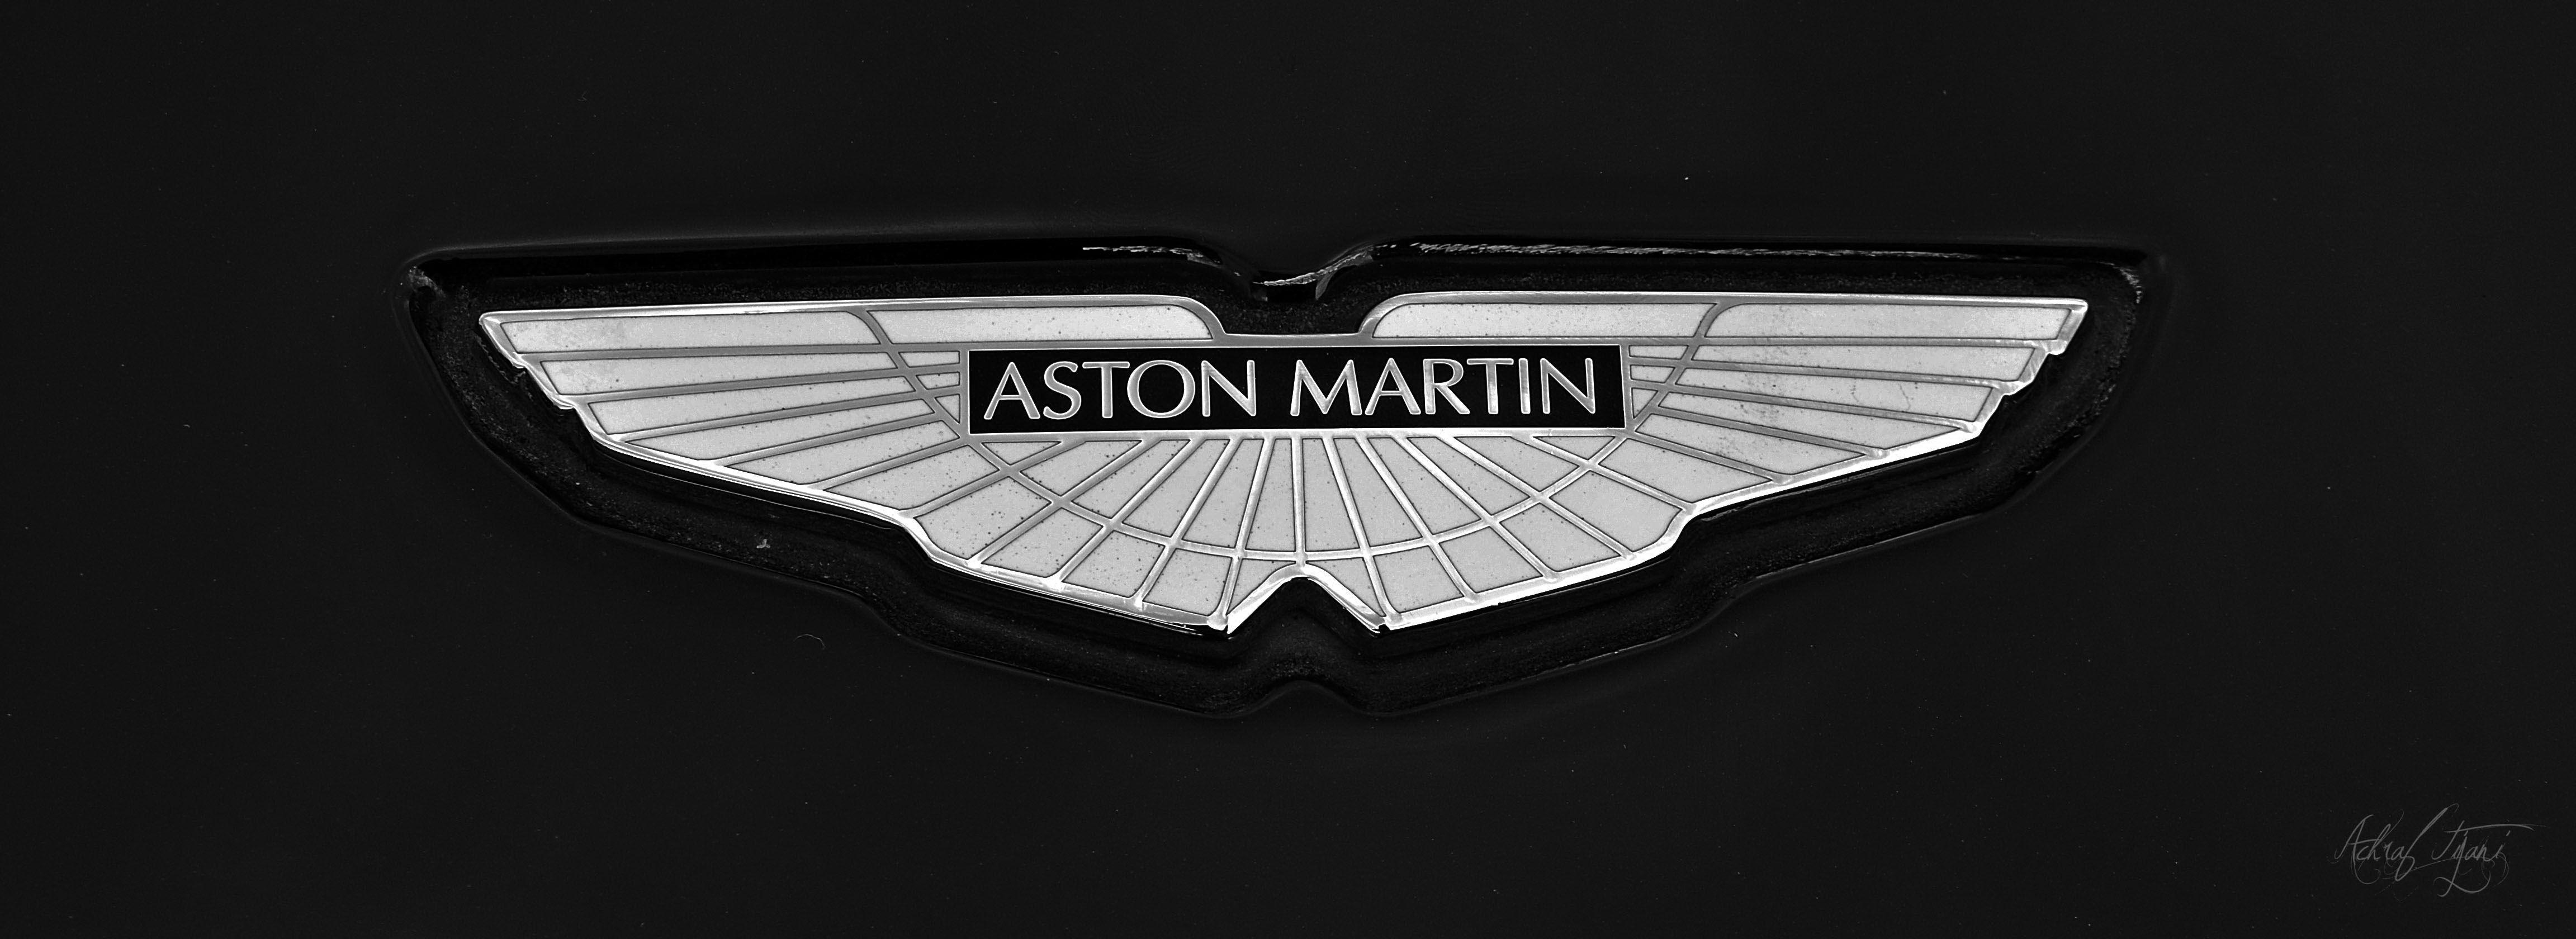 Aston Martin Logo Wallpapers Wallpaper Cave